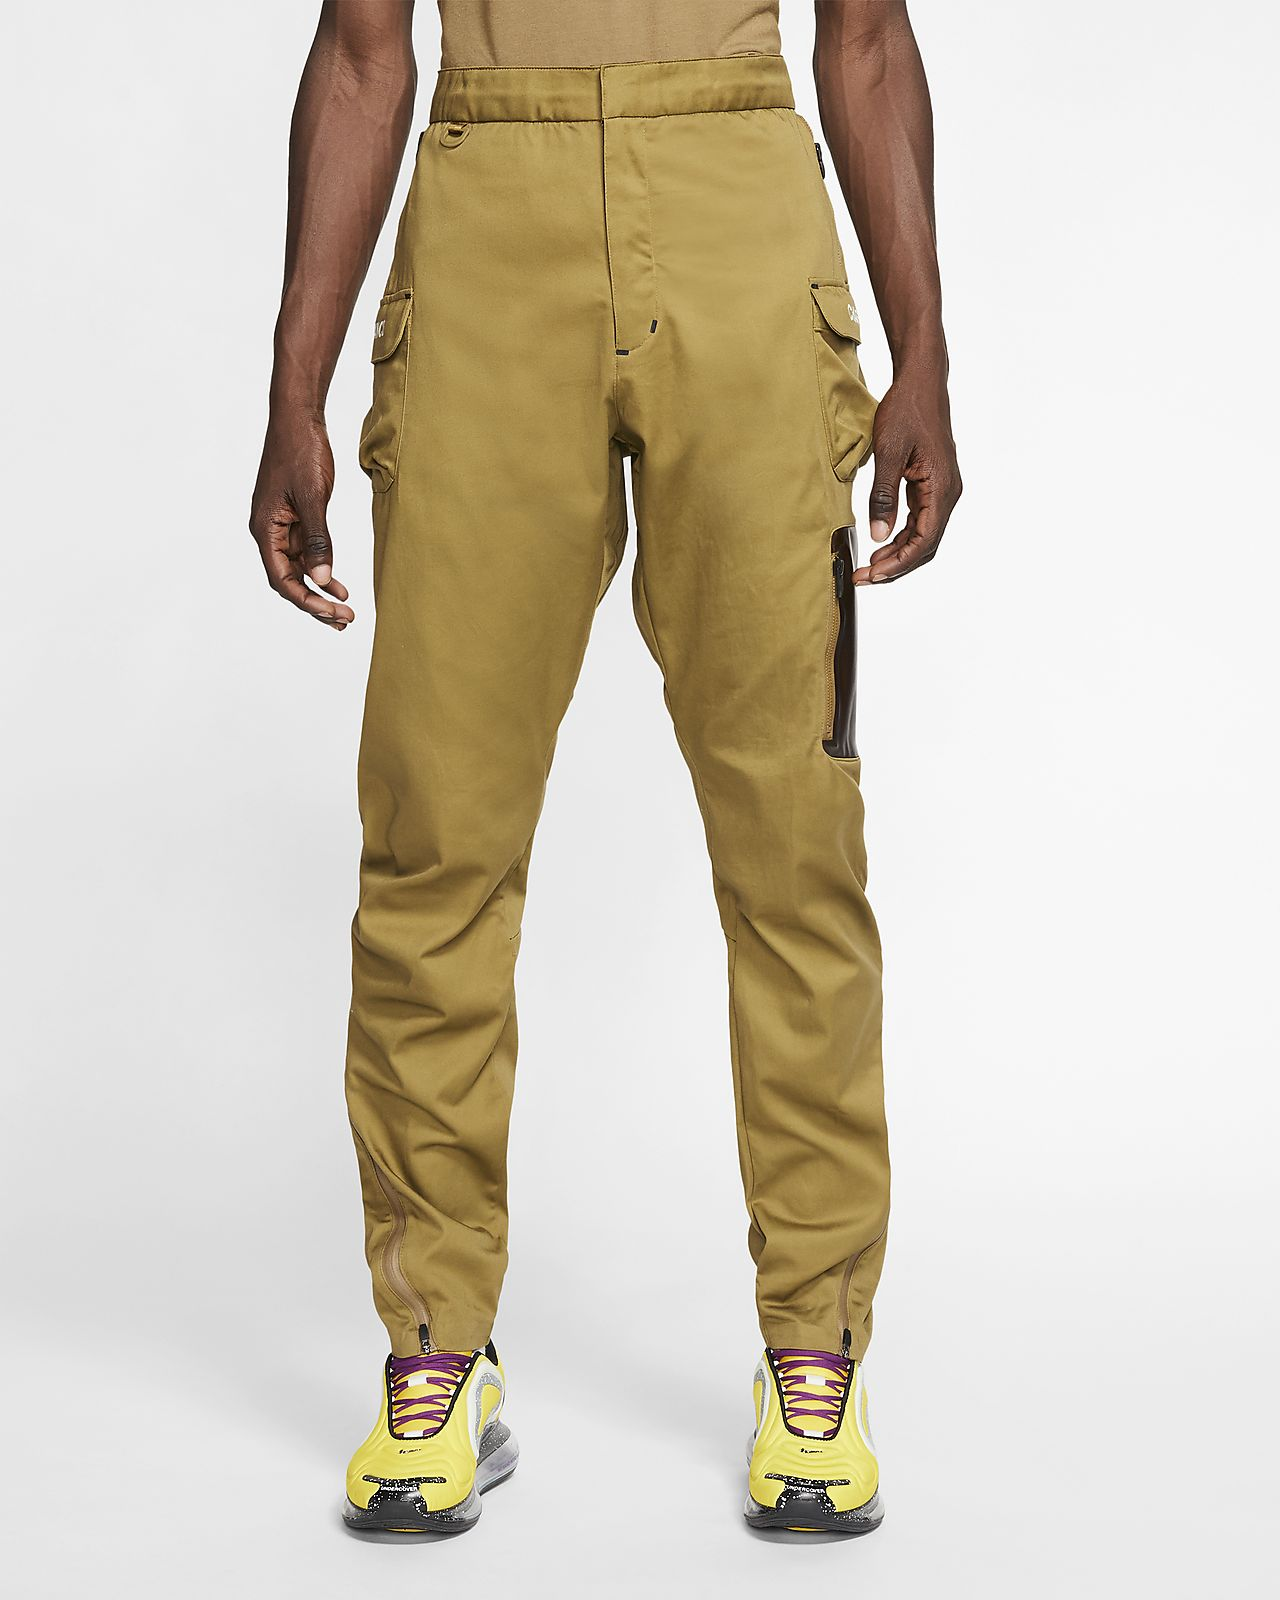 Nike x Undercover Cargo Pants